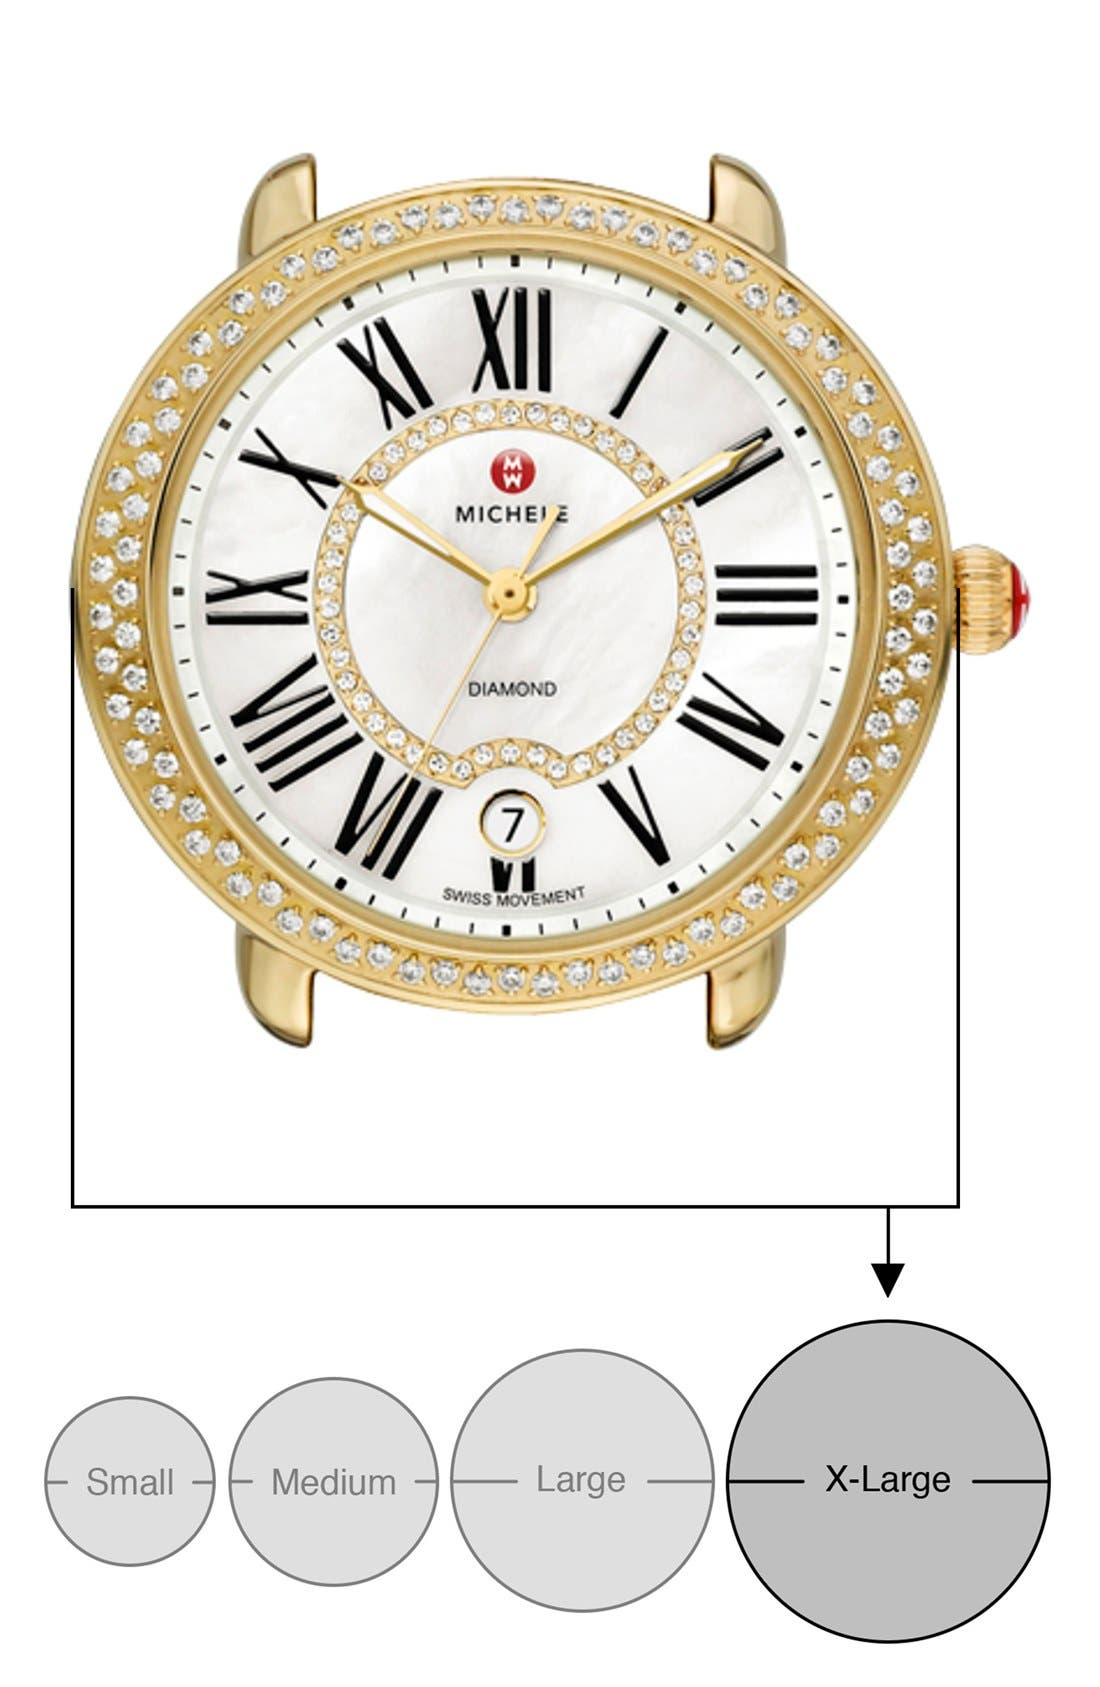 Serein 16 Diamond Gold Plated Watch Case, 34mm x 36mm,                             Alternate thumbnail 4, color,                             GOLD